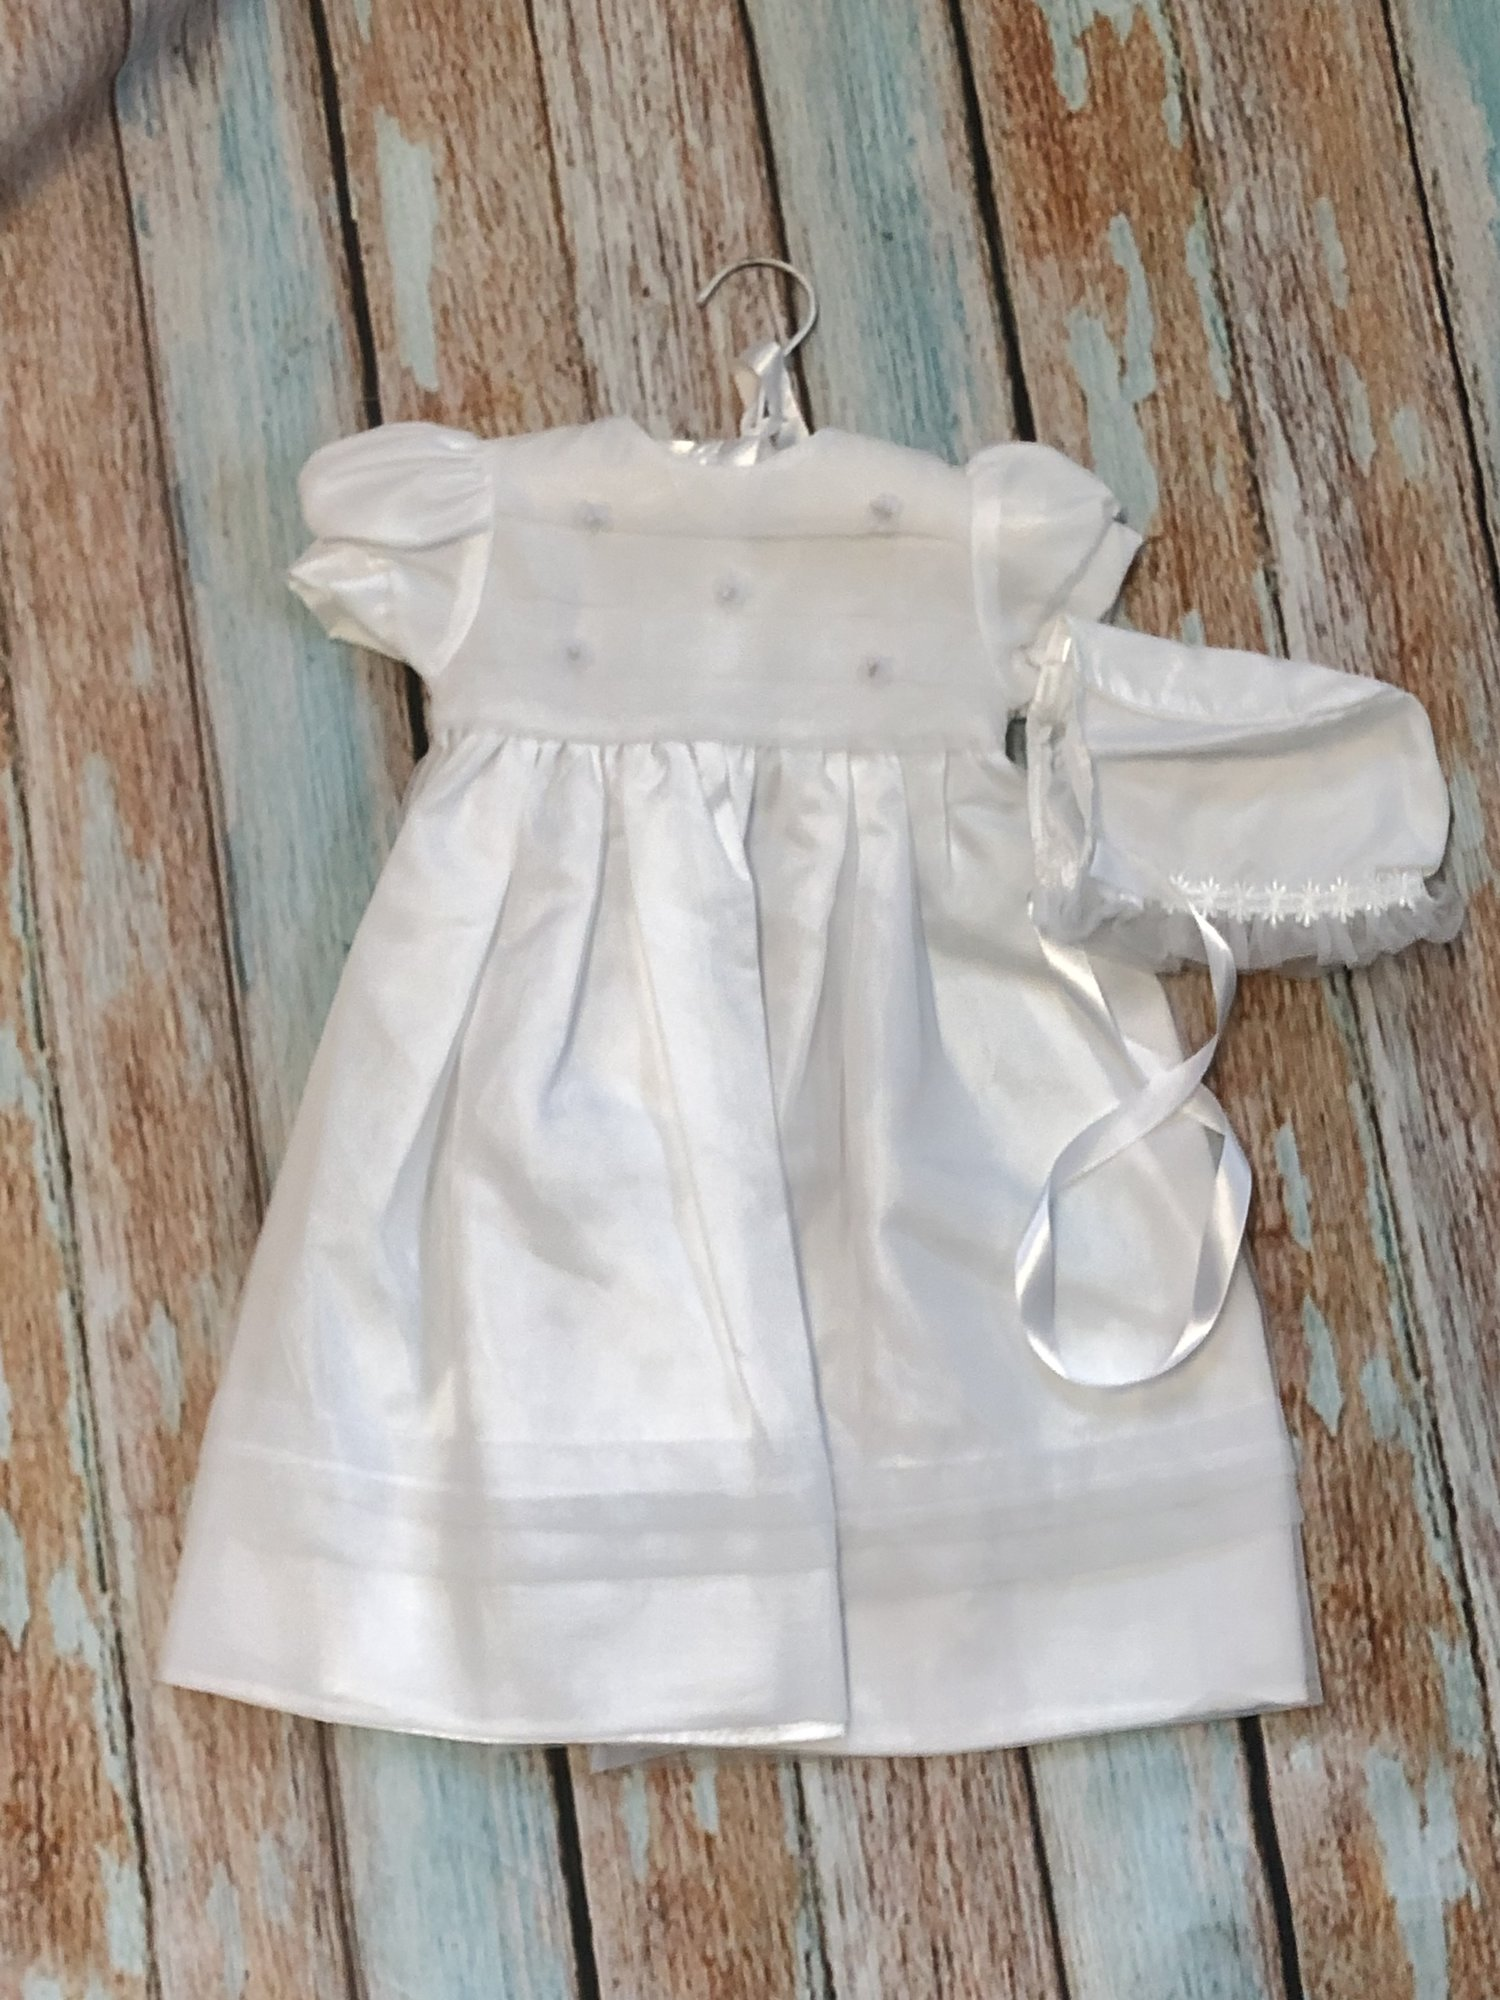 NEW Children's House Christening dress with matching hat.  The bodice of the dress has organza pleats with tiny pearls in the middle of the roses.